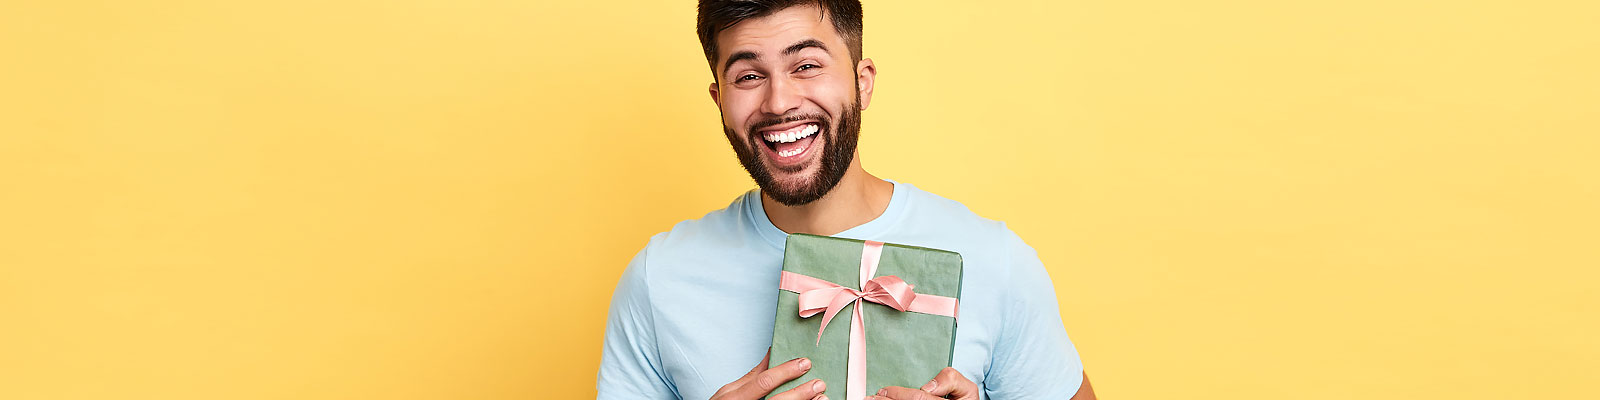 Experience Gifts for Men